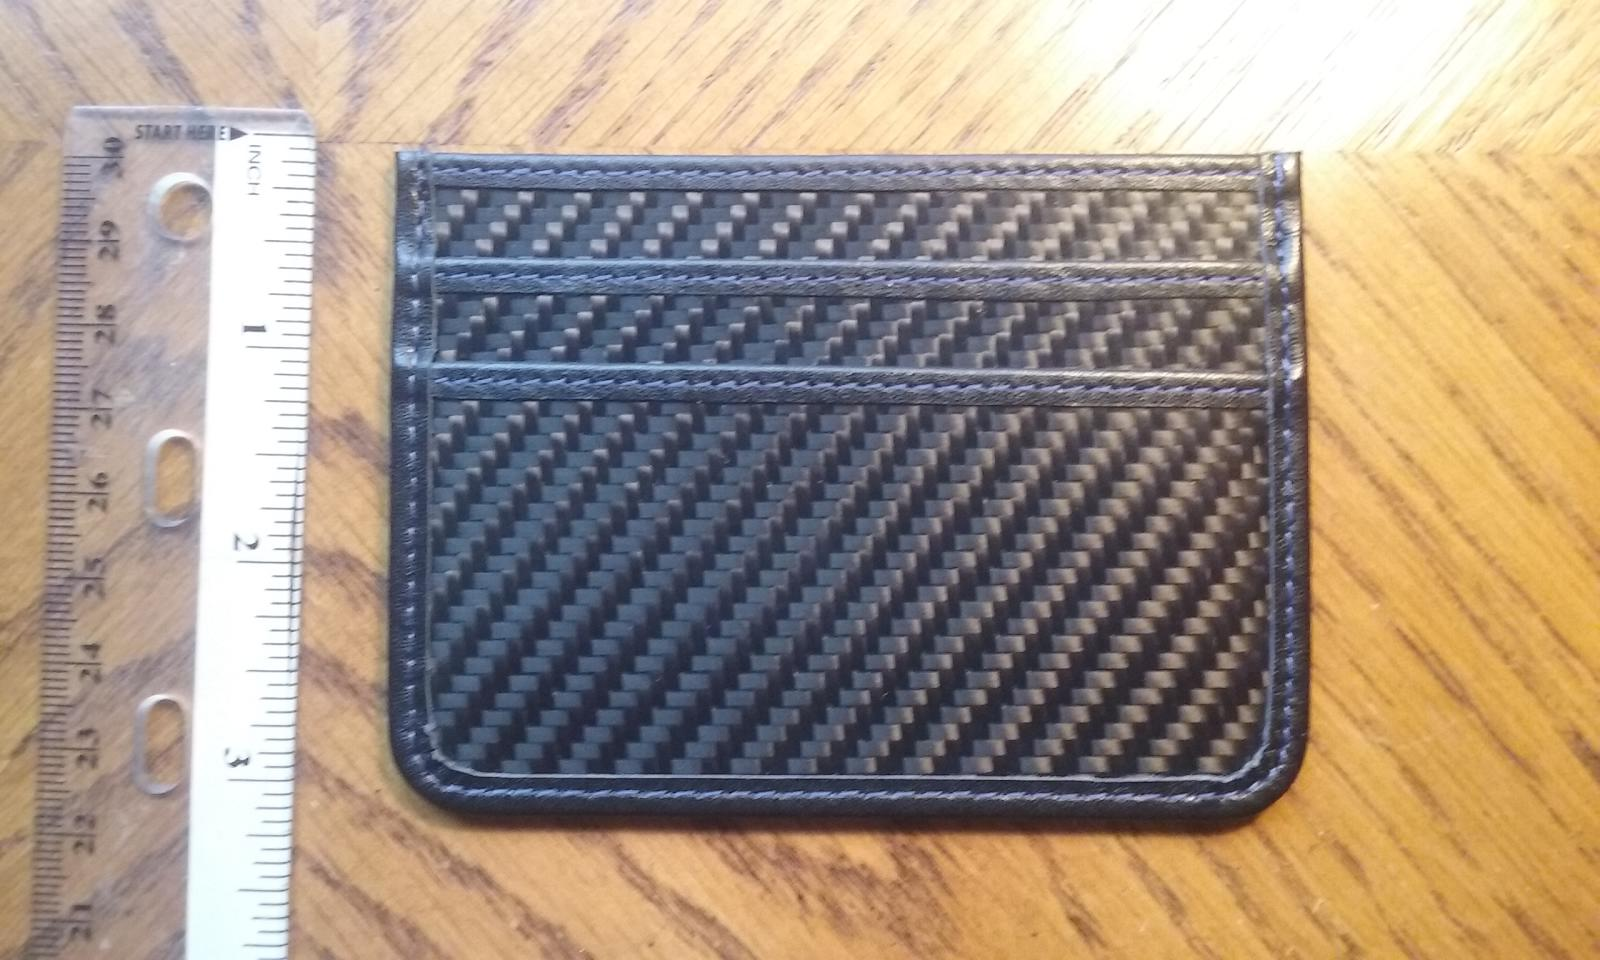 SUPER THIN CARBON FIBER WALLET WITH RFID